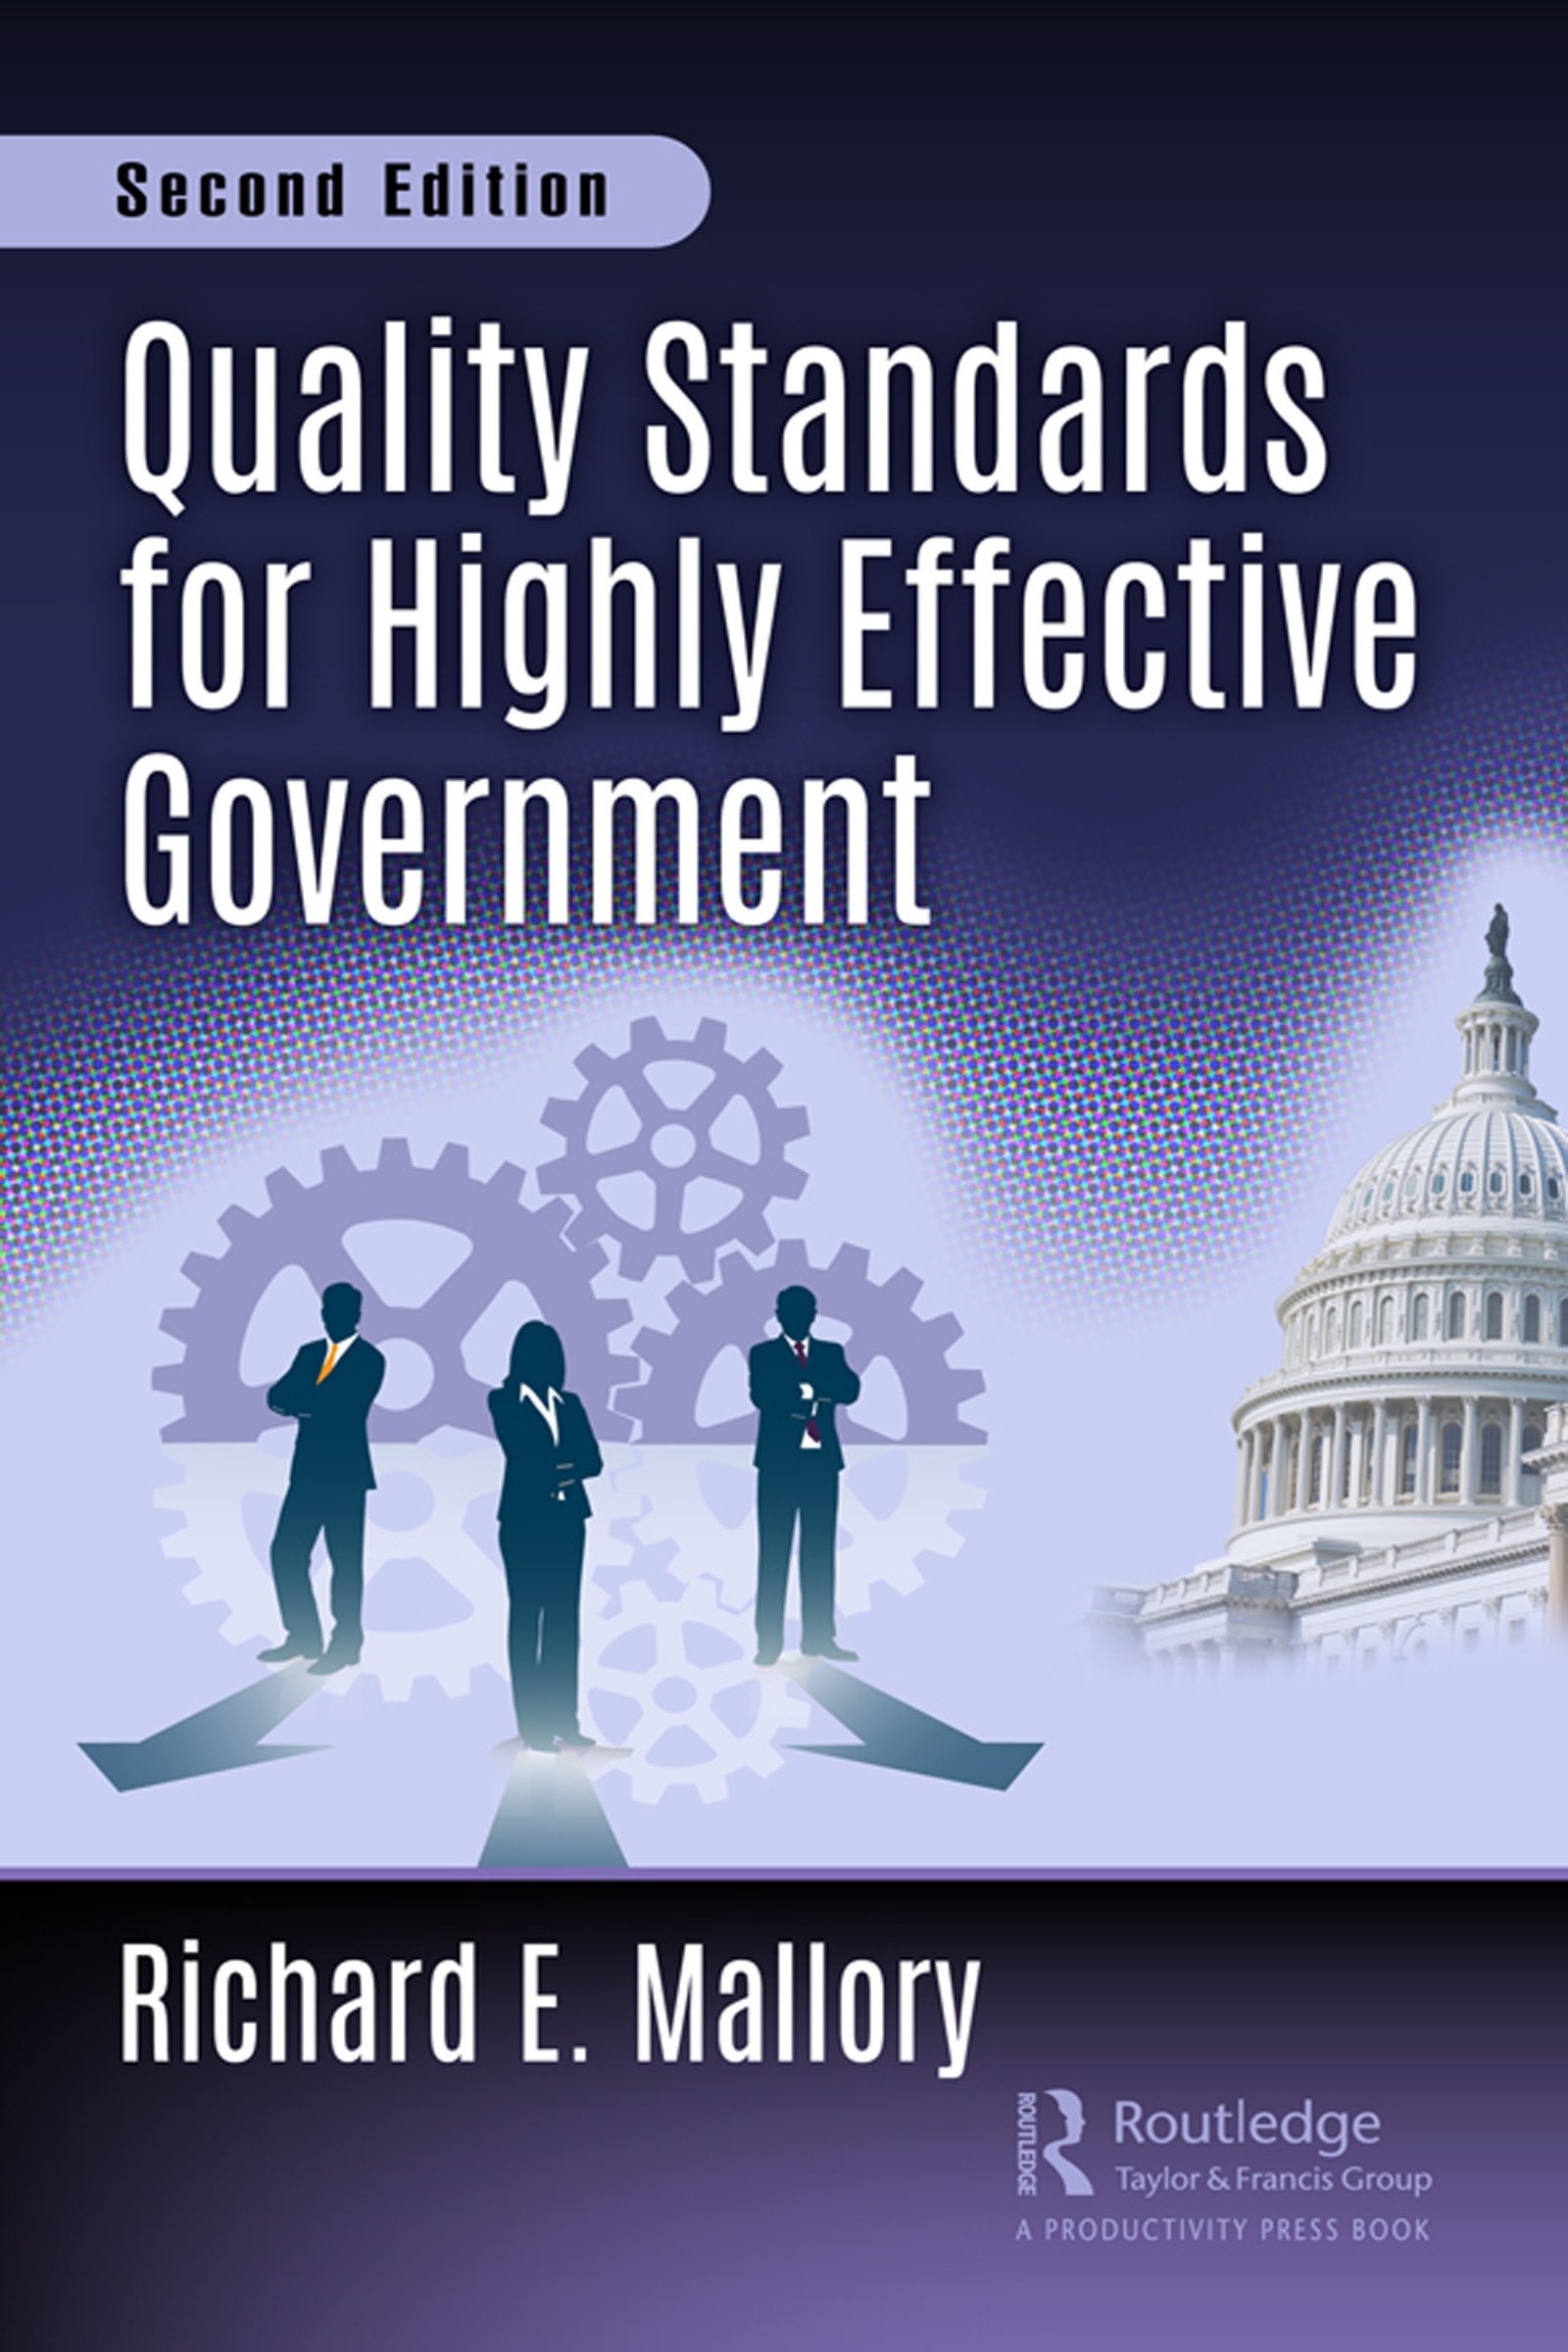 Quality Standards for Highly Effective Government